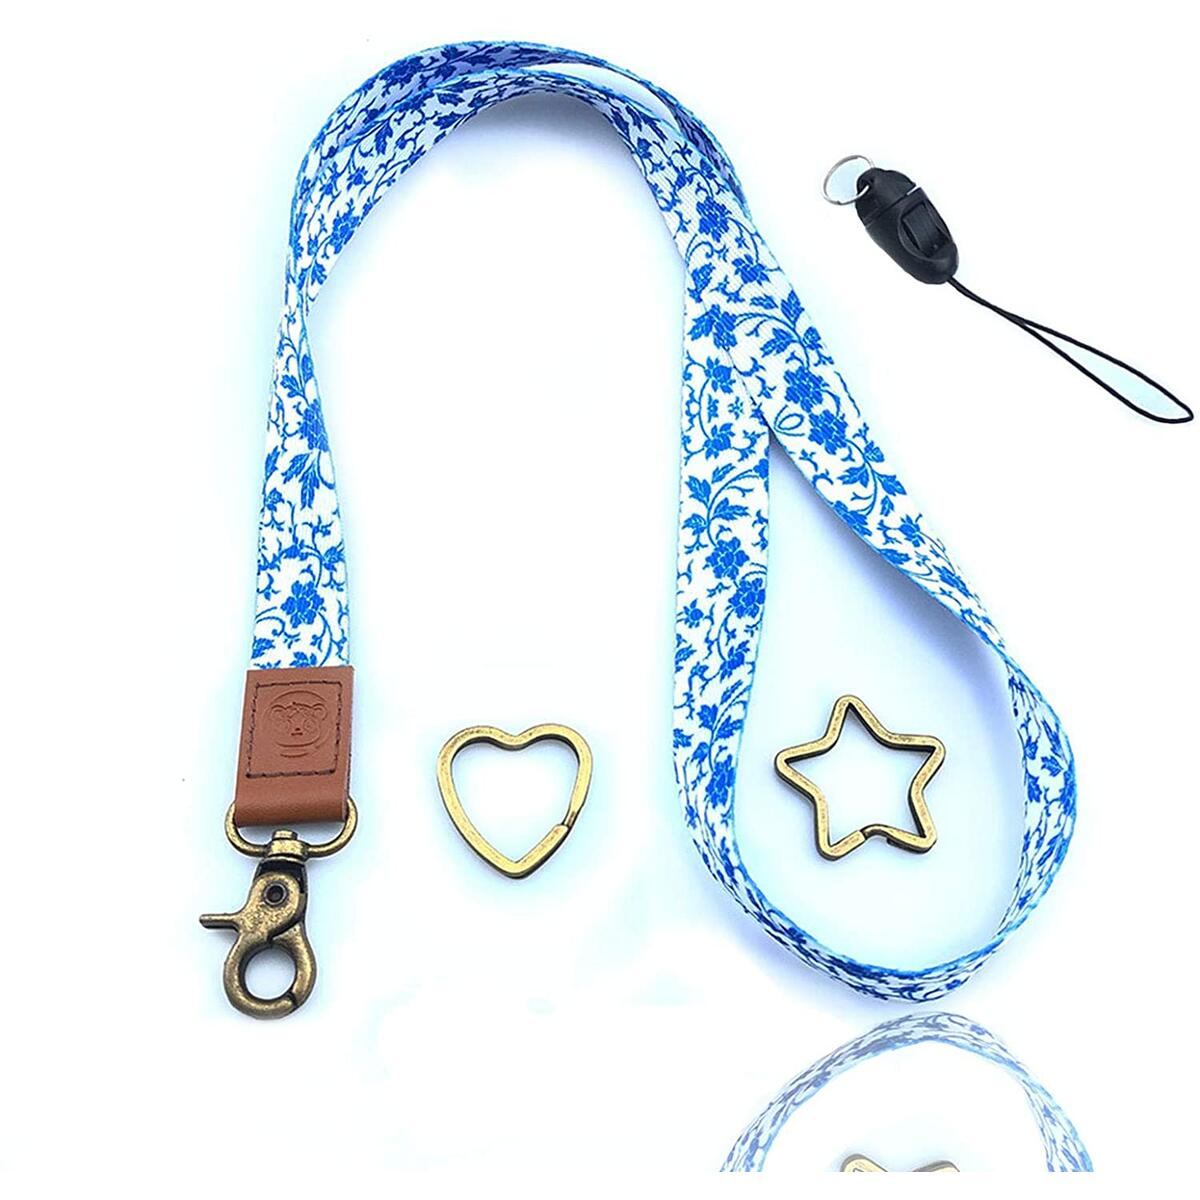 Cute Lanyard Cool Key Chain Accessories ID Badge Card Holder Leather Keychains Neck Strap